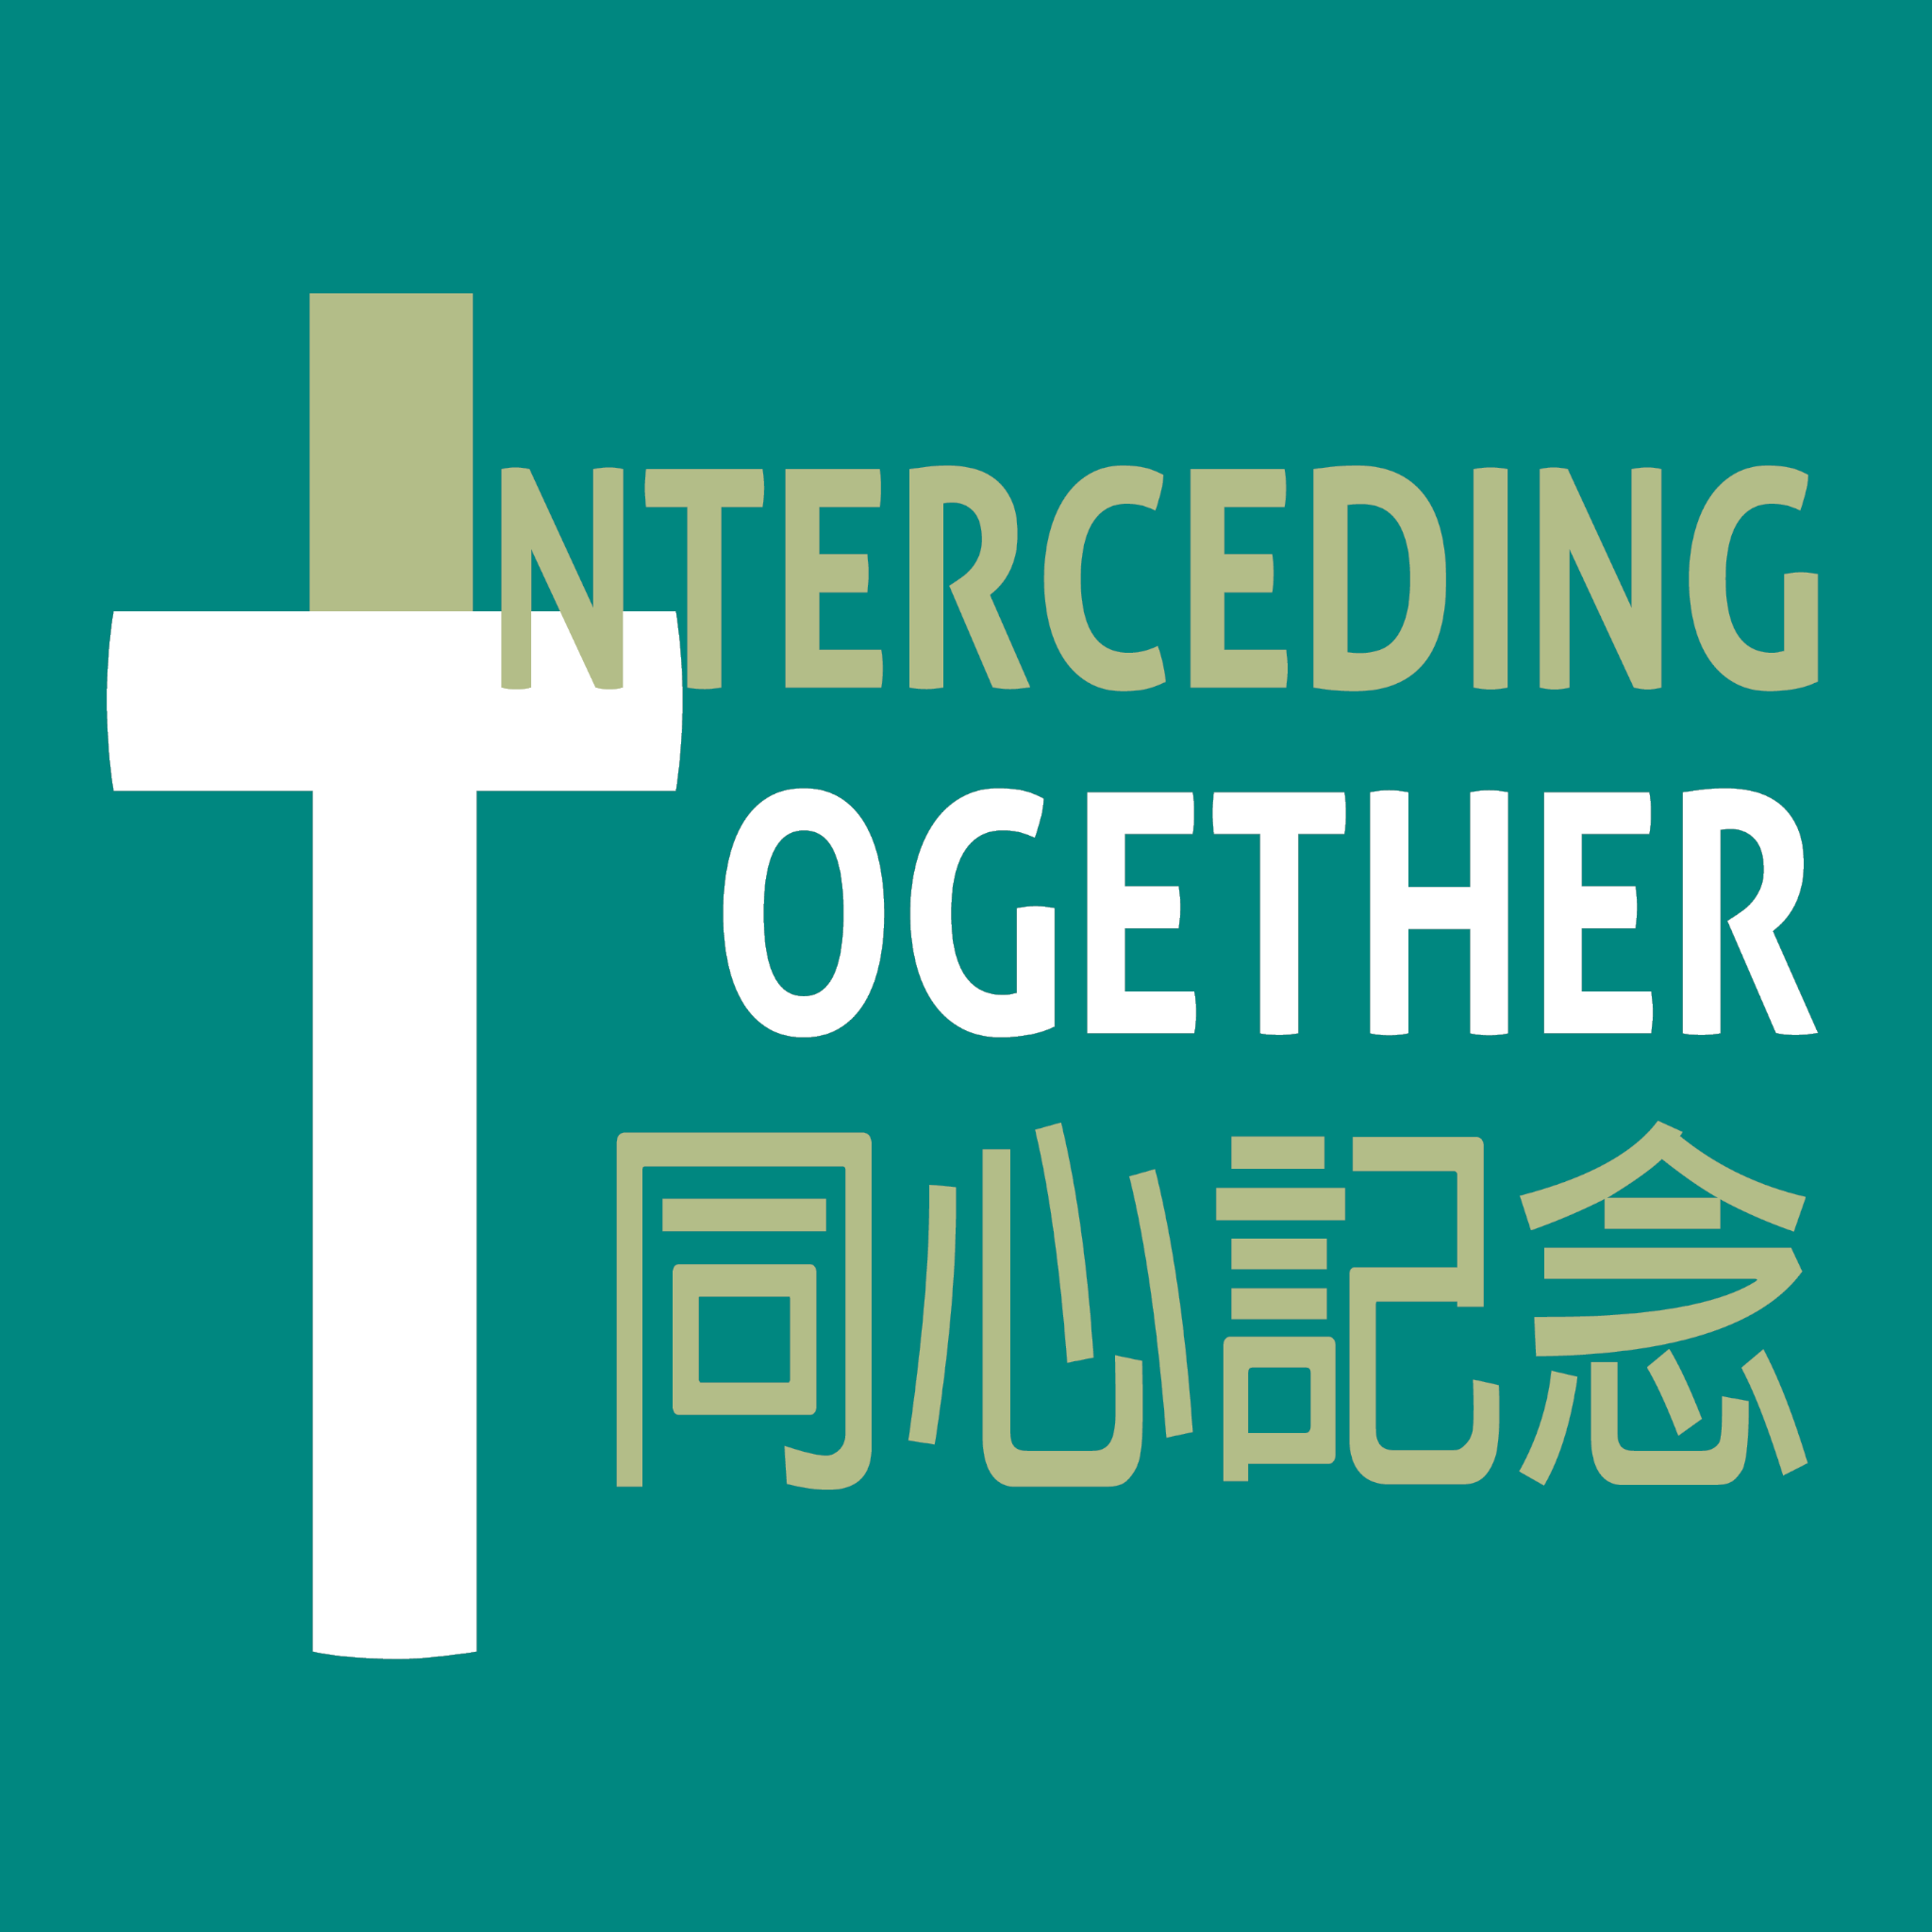 INTERCEDING TOGETHER